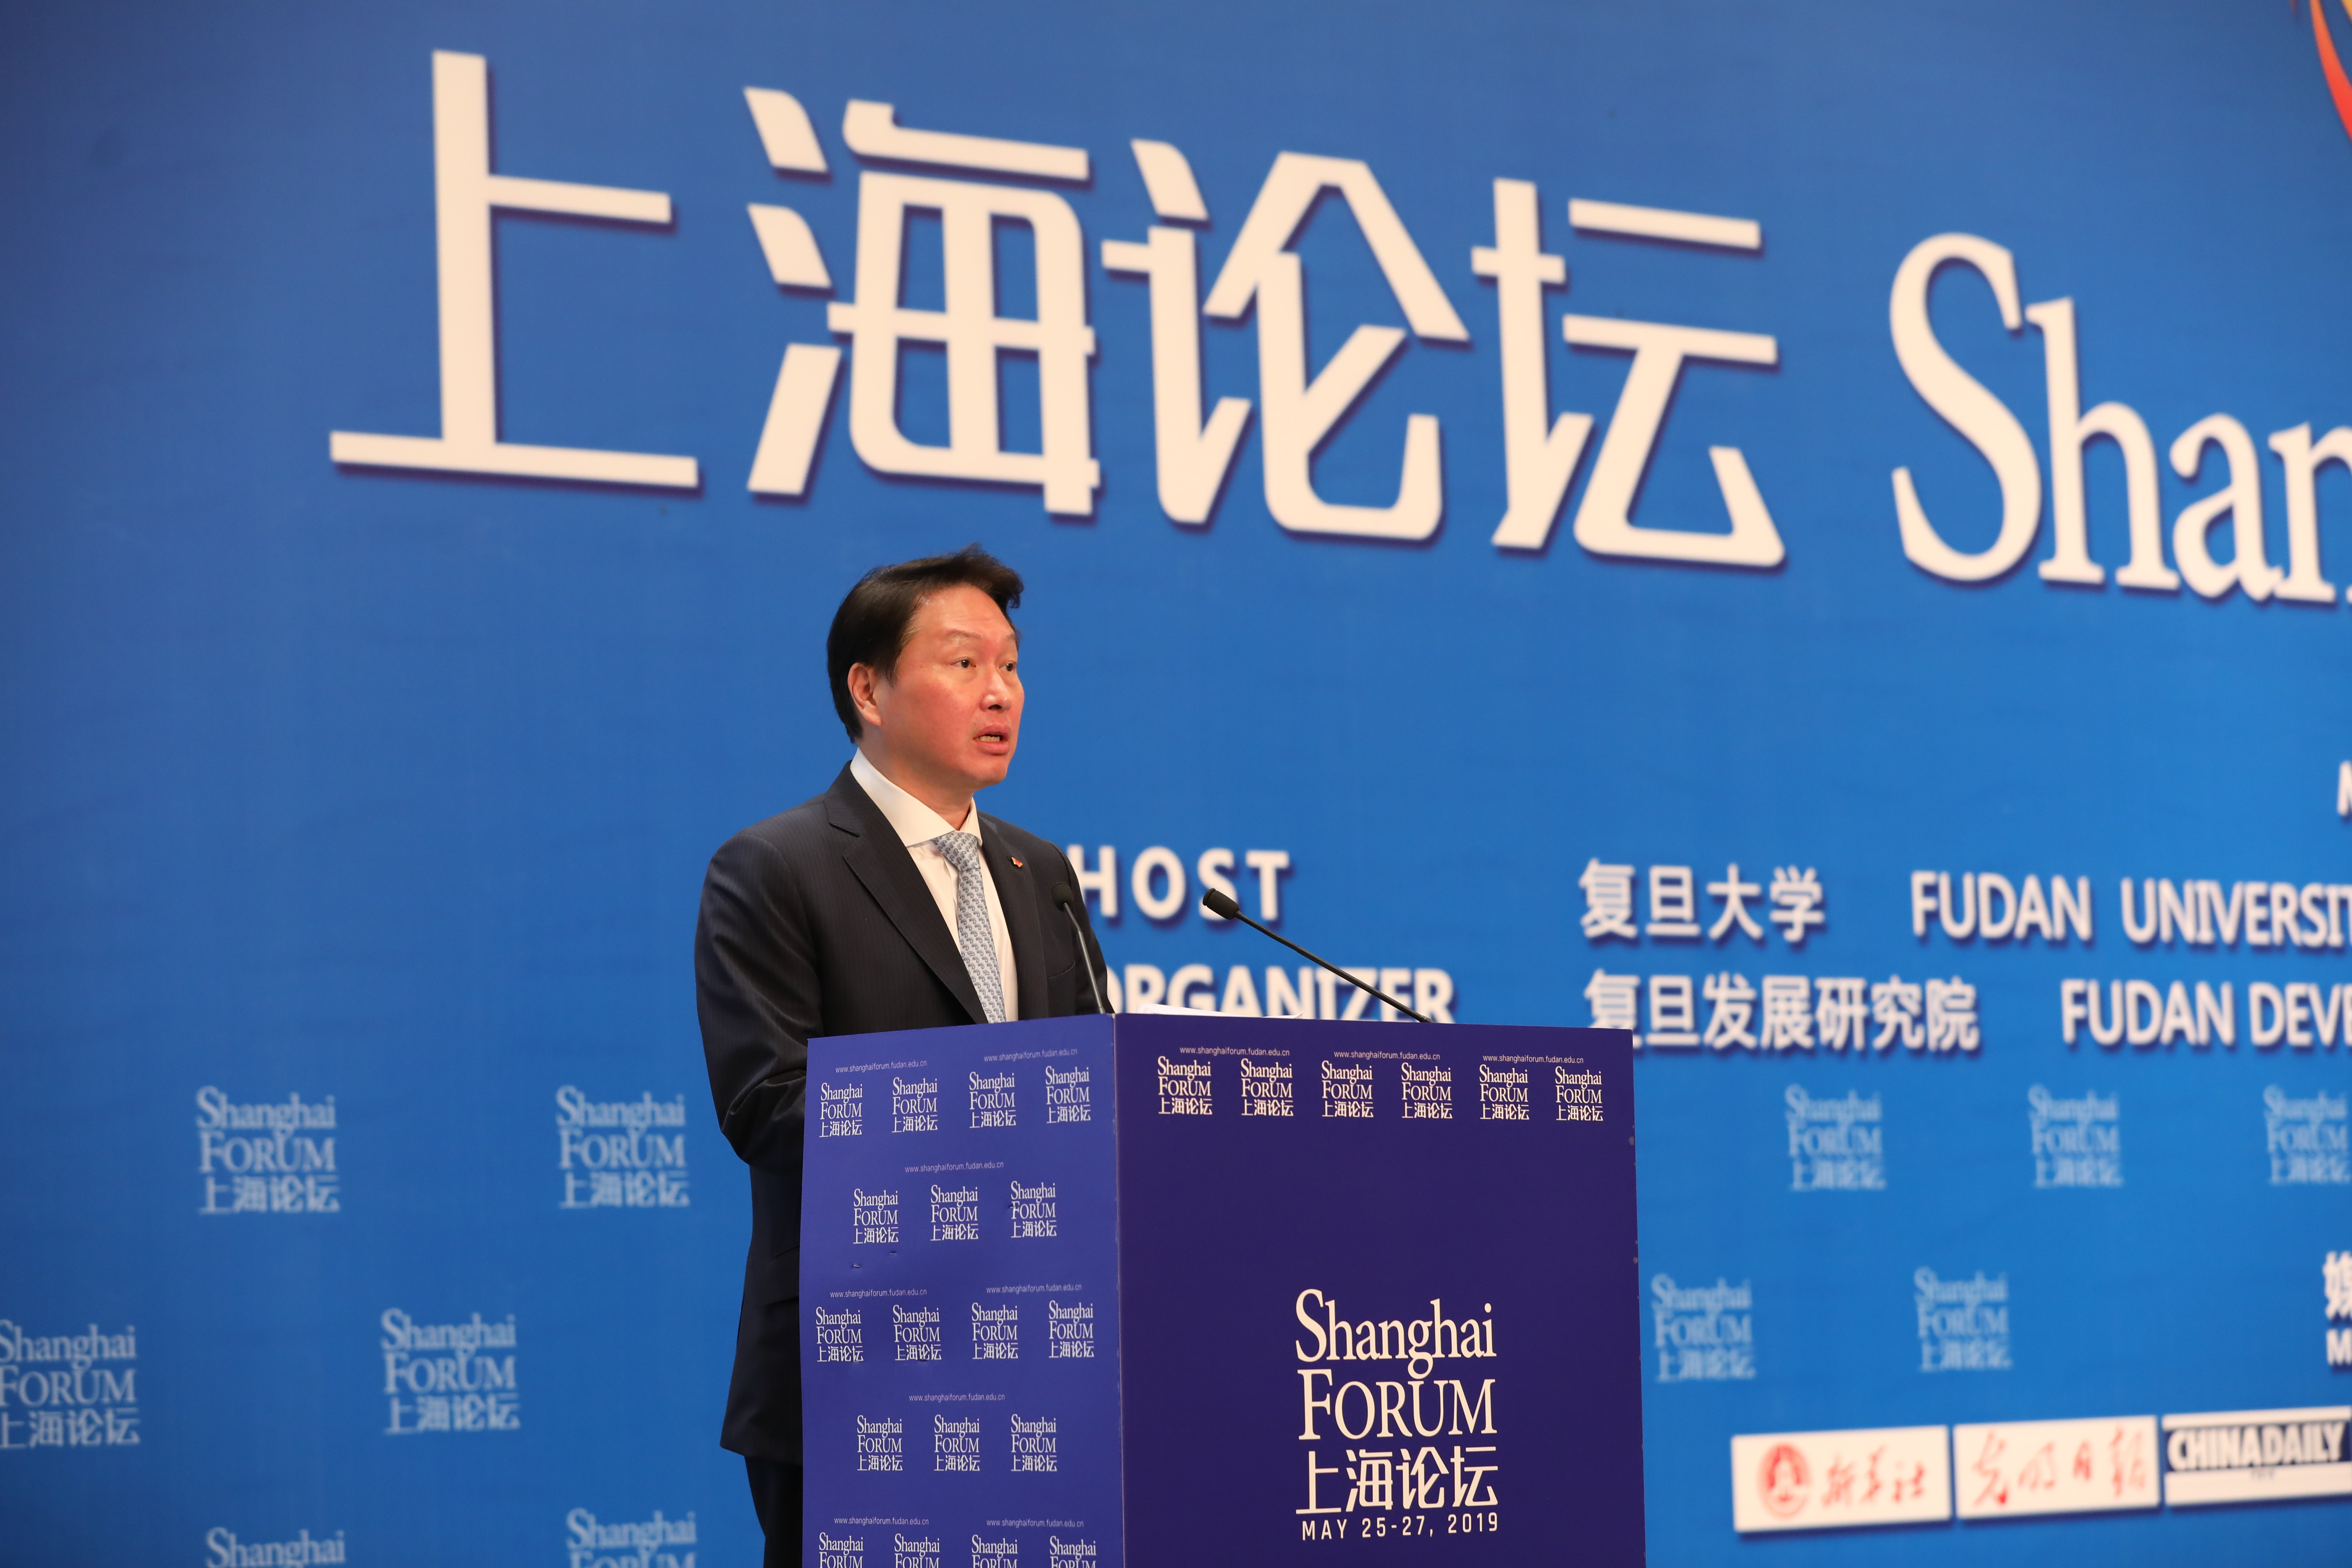 Shanghai Forum opens in the city